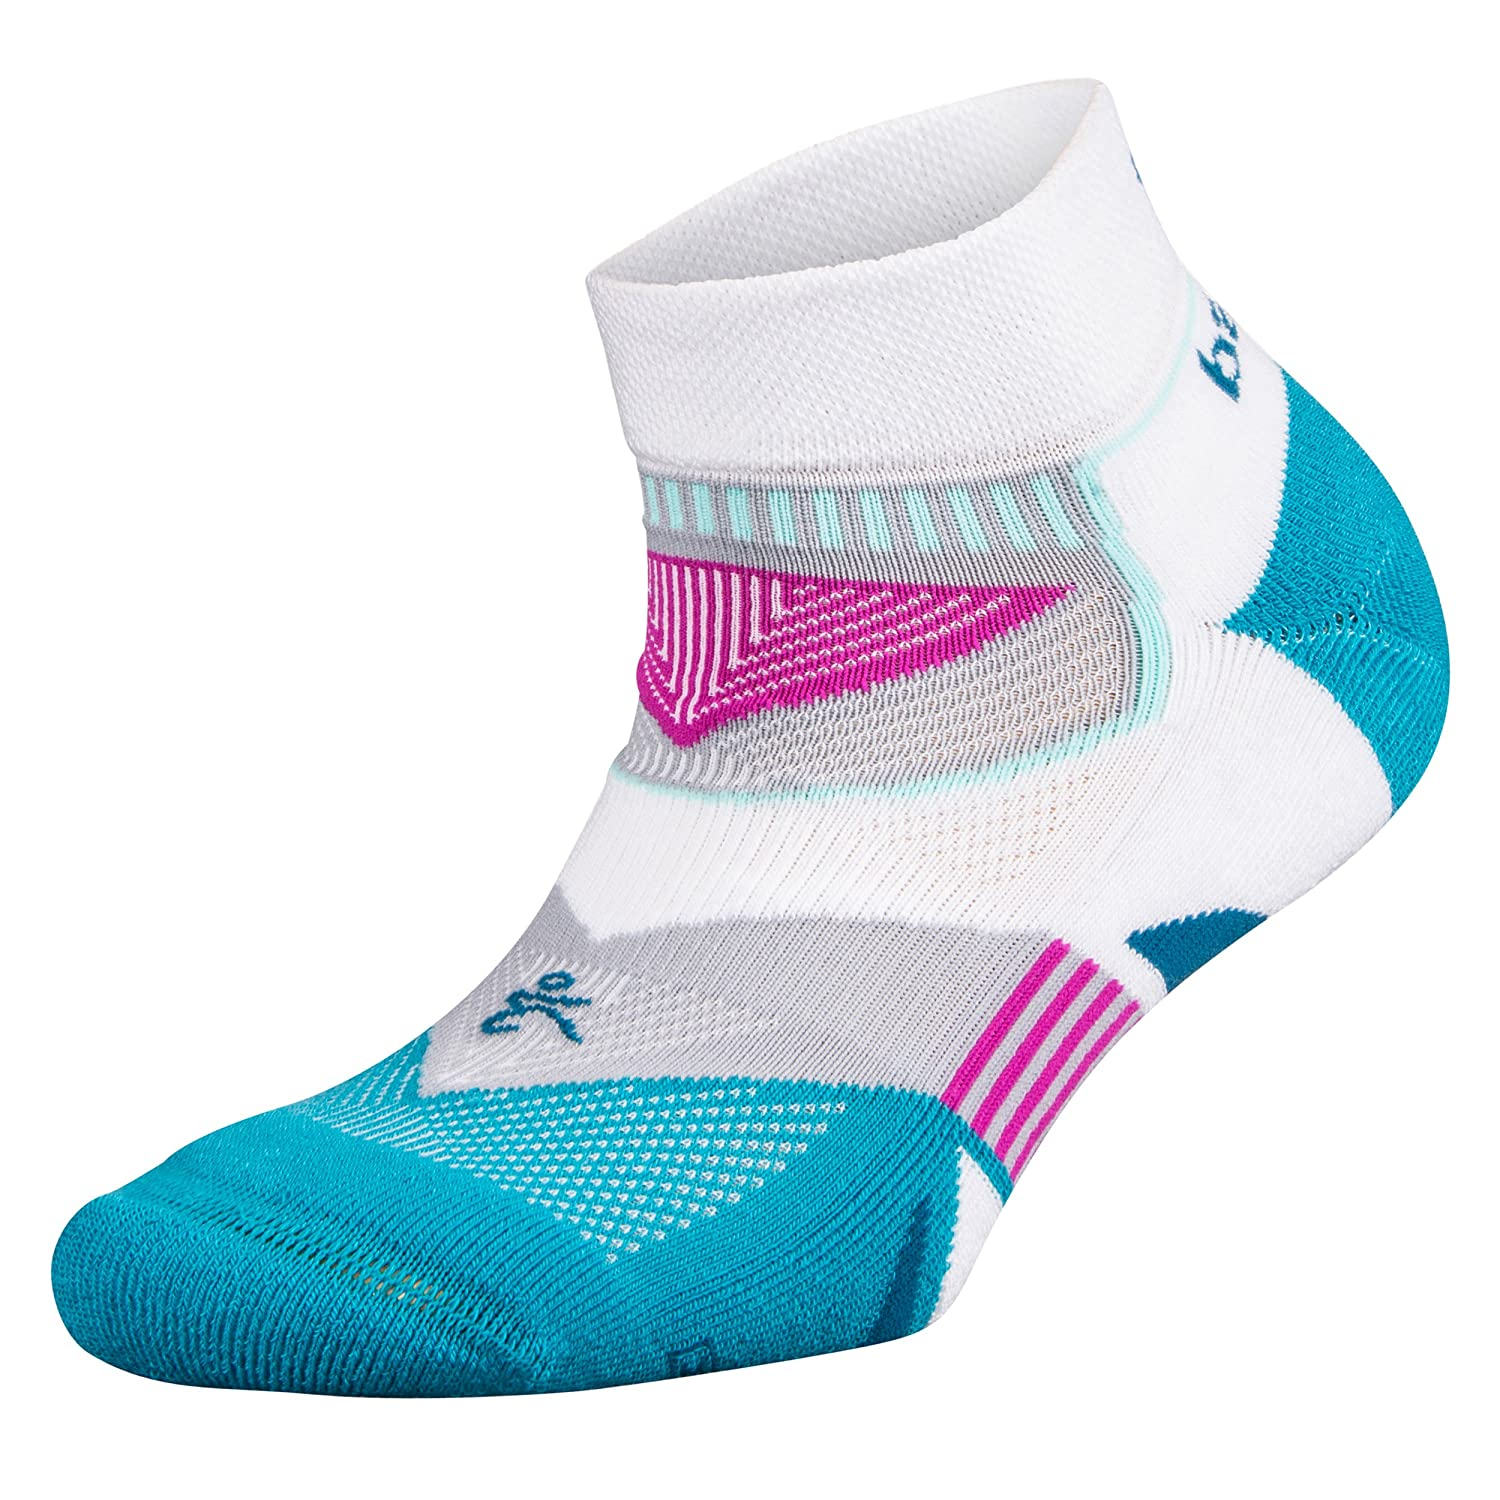 Balega Women's Enduro V-Tech Low Cut Socks (1 Pair), White/Lake Blue, Medium Balega Socks 8924-1860